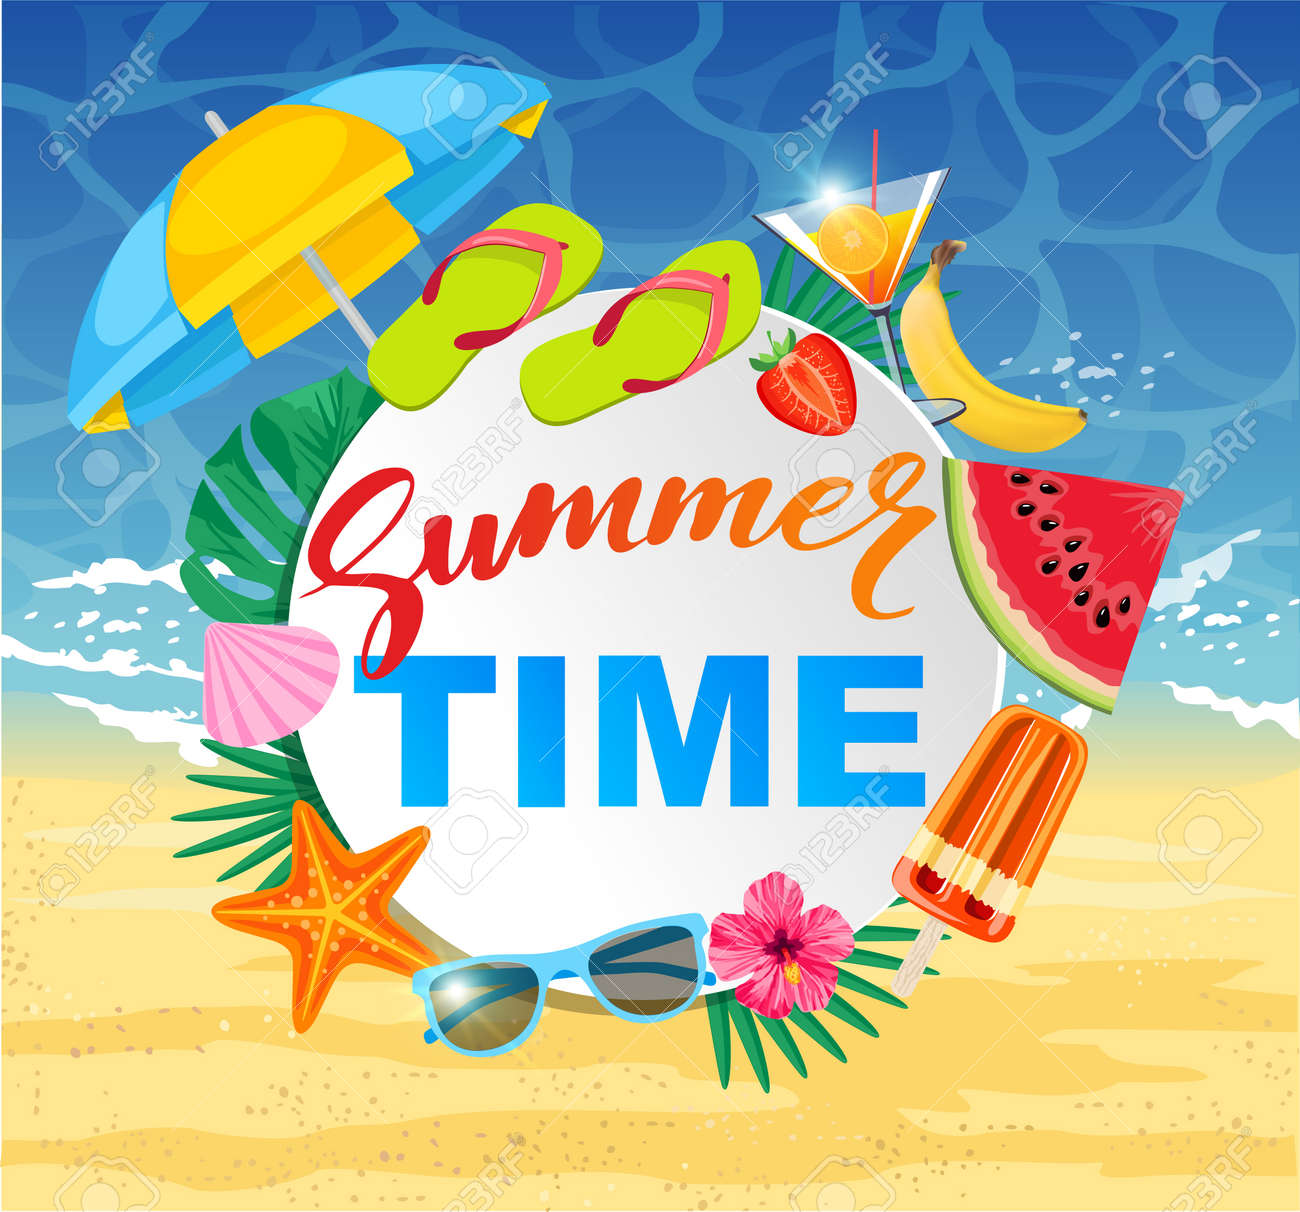 Summer time design with white circle for text and colorful beach elements. Bright greeting banner. Poster with tropical leaves, sun umbrella watermelon, popsicles, cocktail on sea background. - 169650562